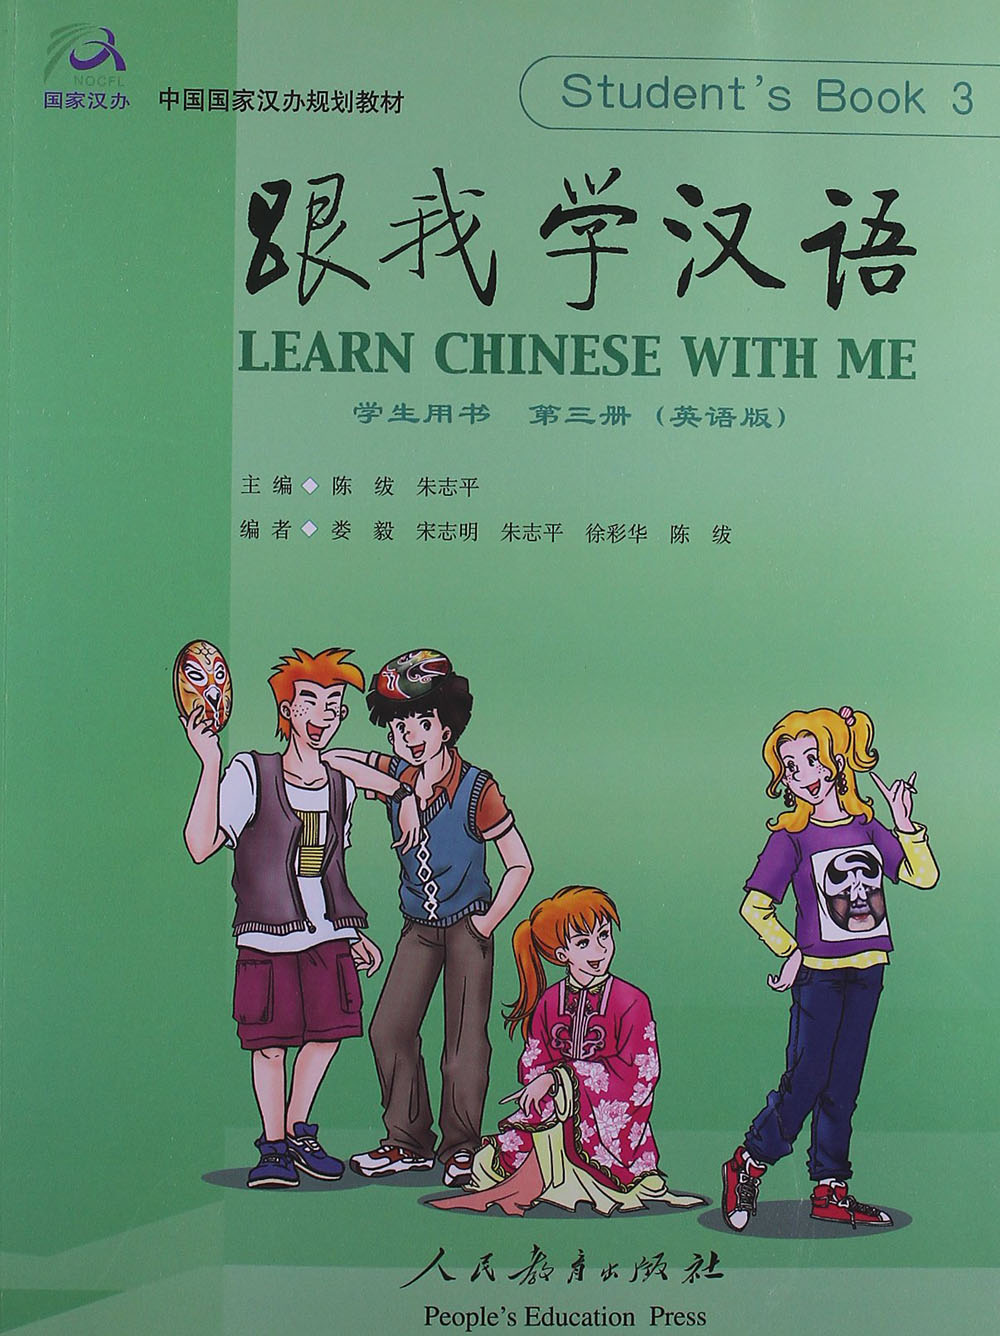 Learn Chinese With Me Book Volume 3 for Chinese textbook in English and Chinese <br>